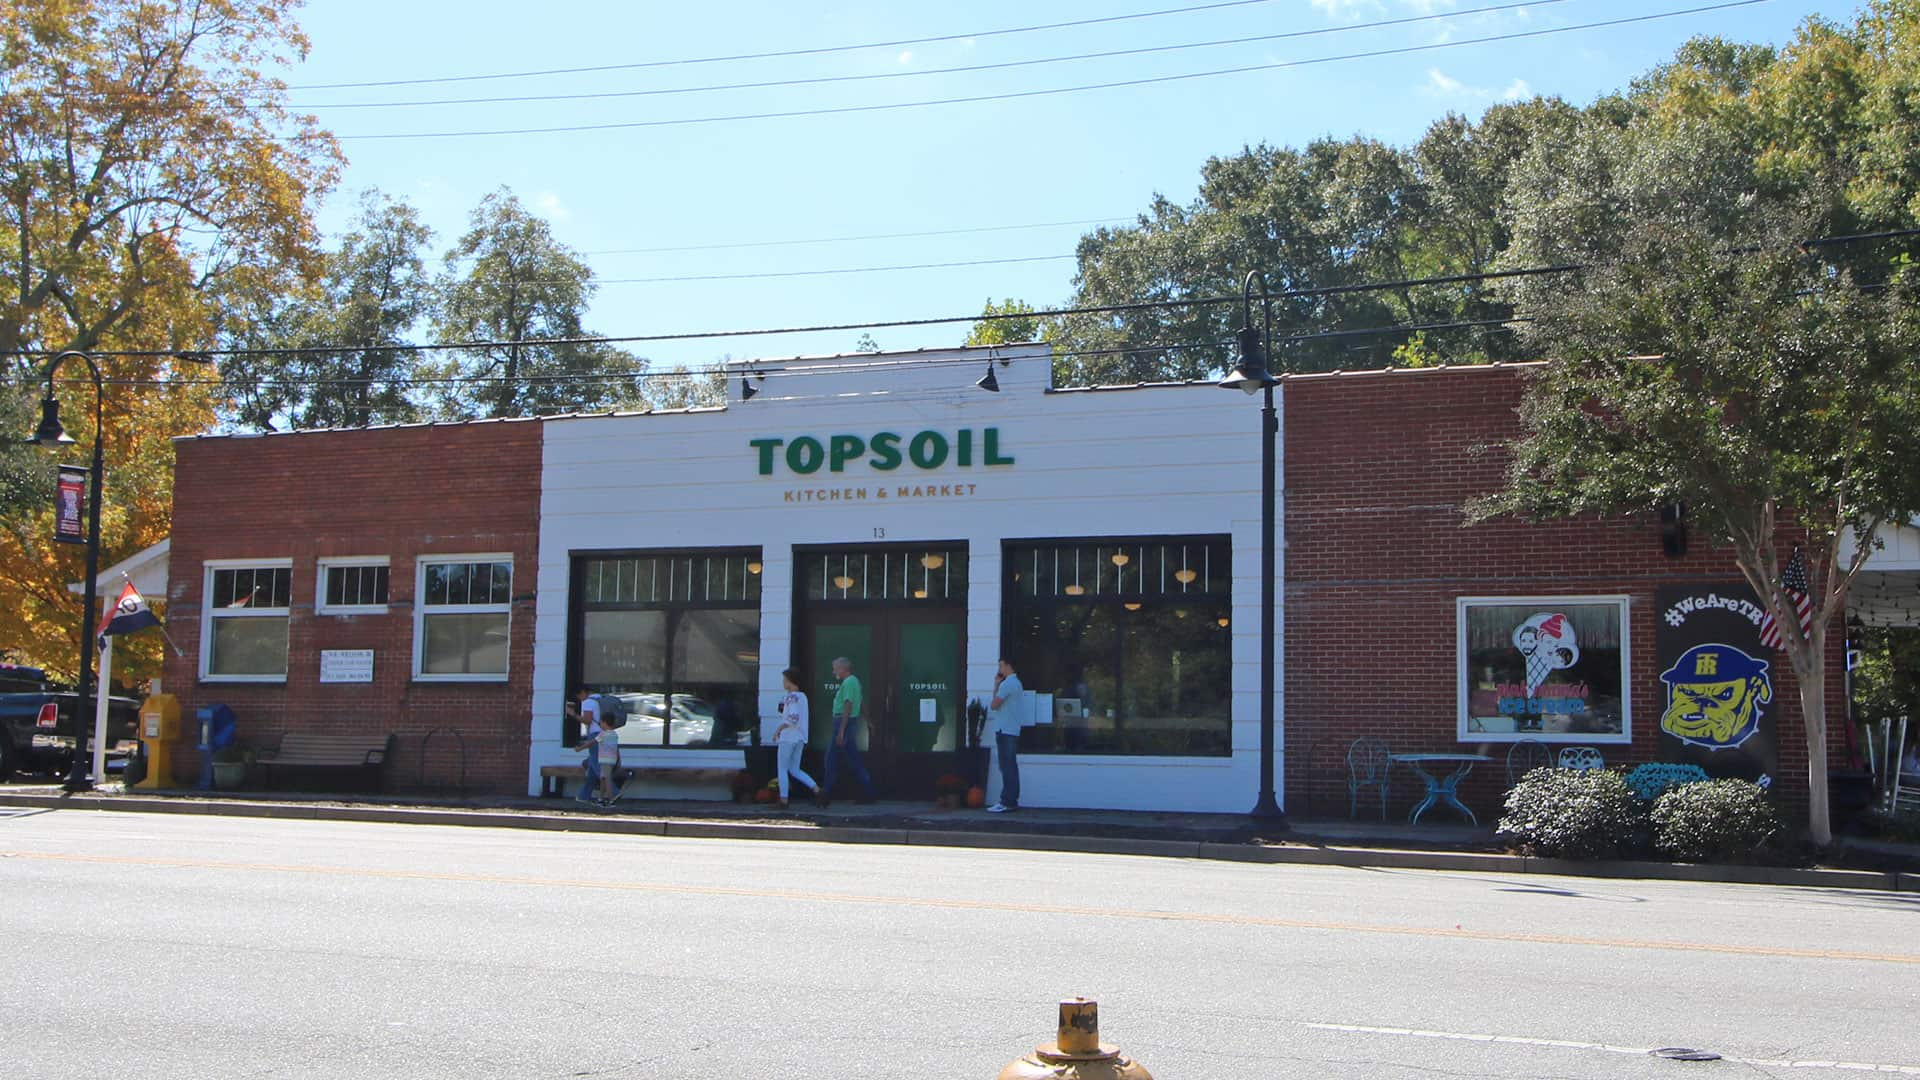 Topsoil Kitchen & Market